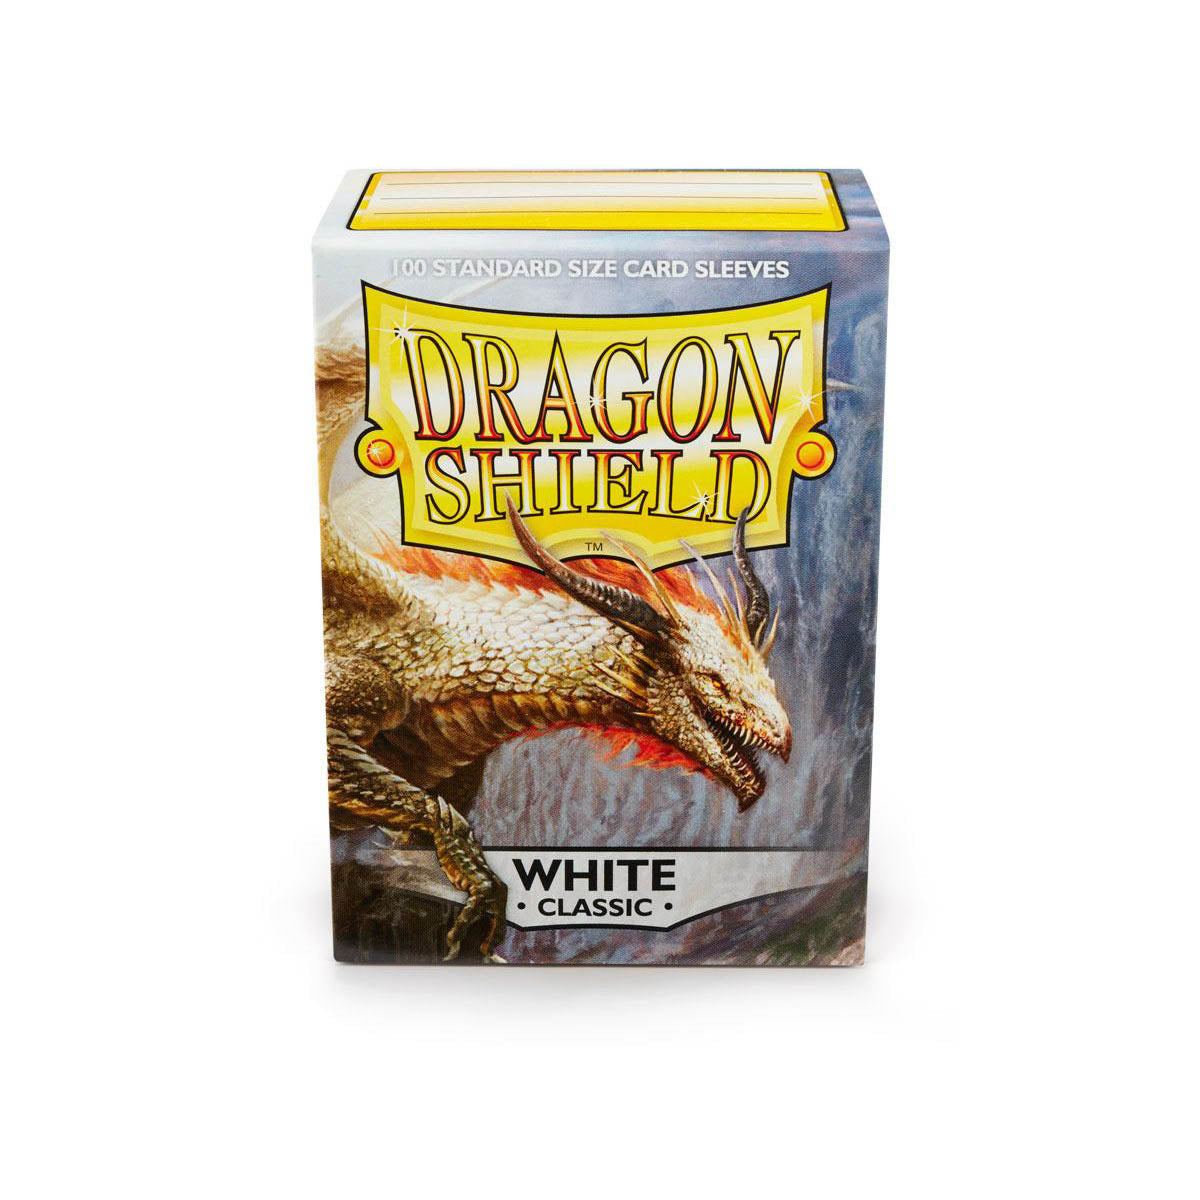 Dragon Shield Sleeves White 100CT Standard Size